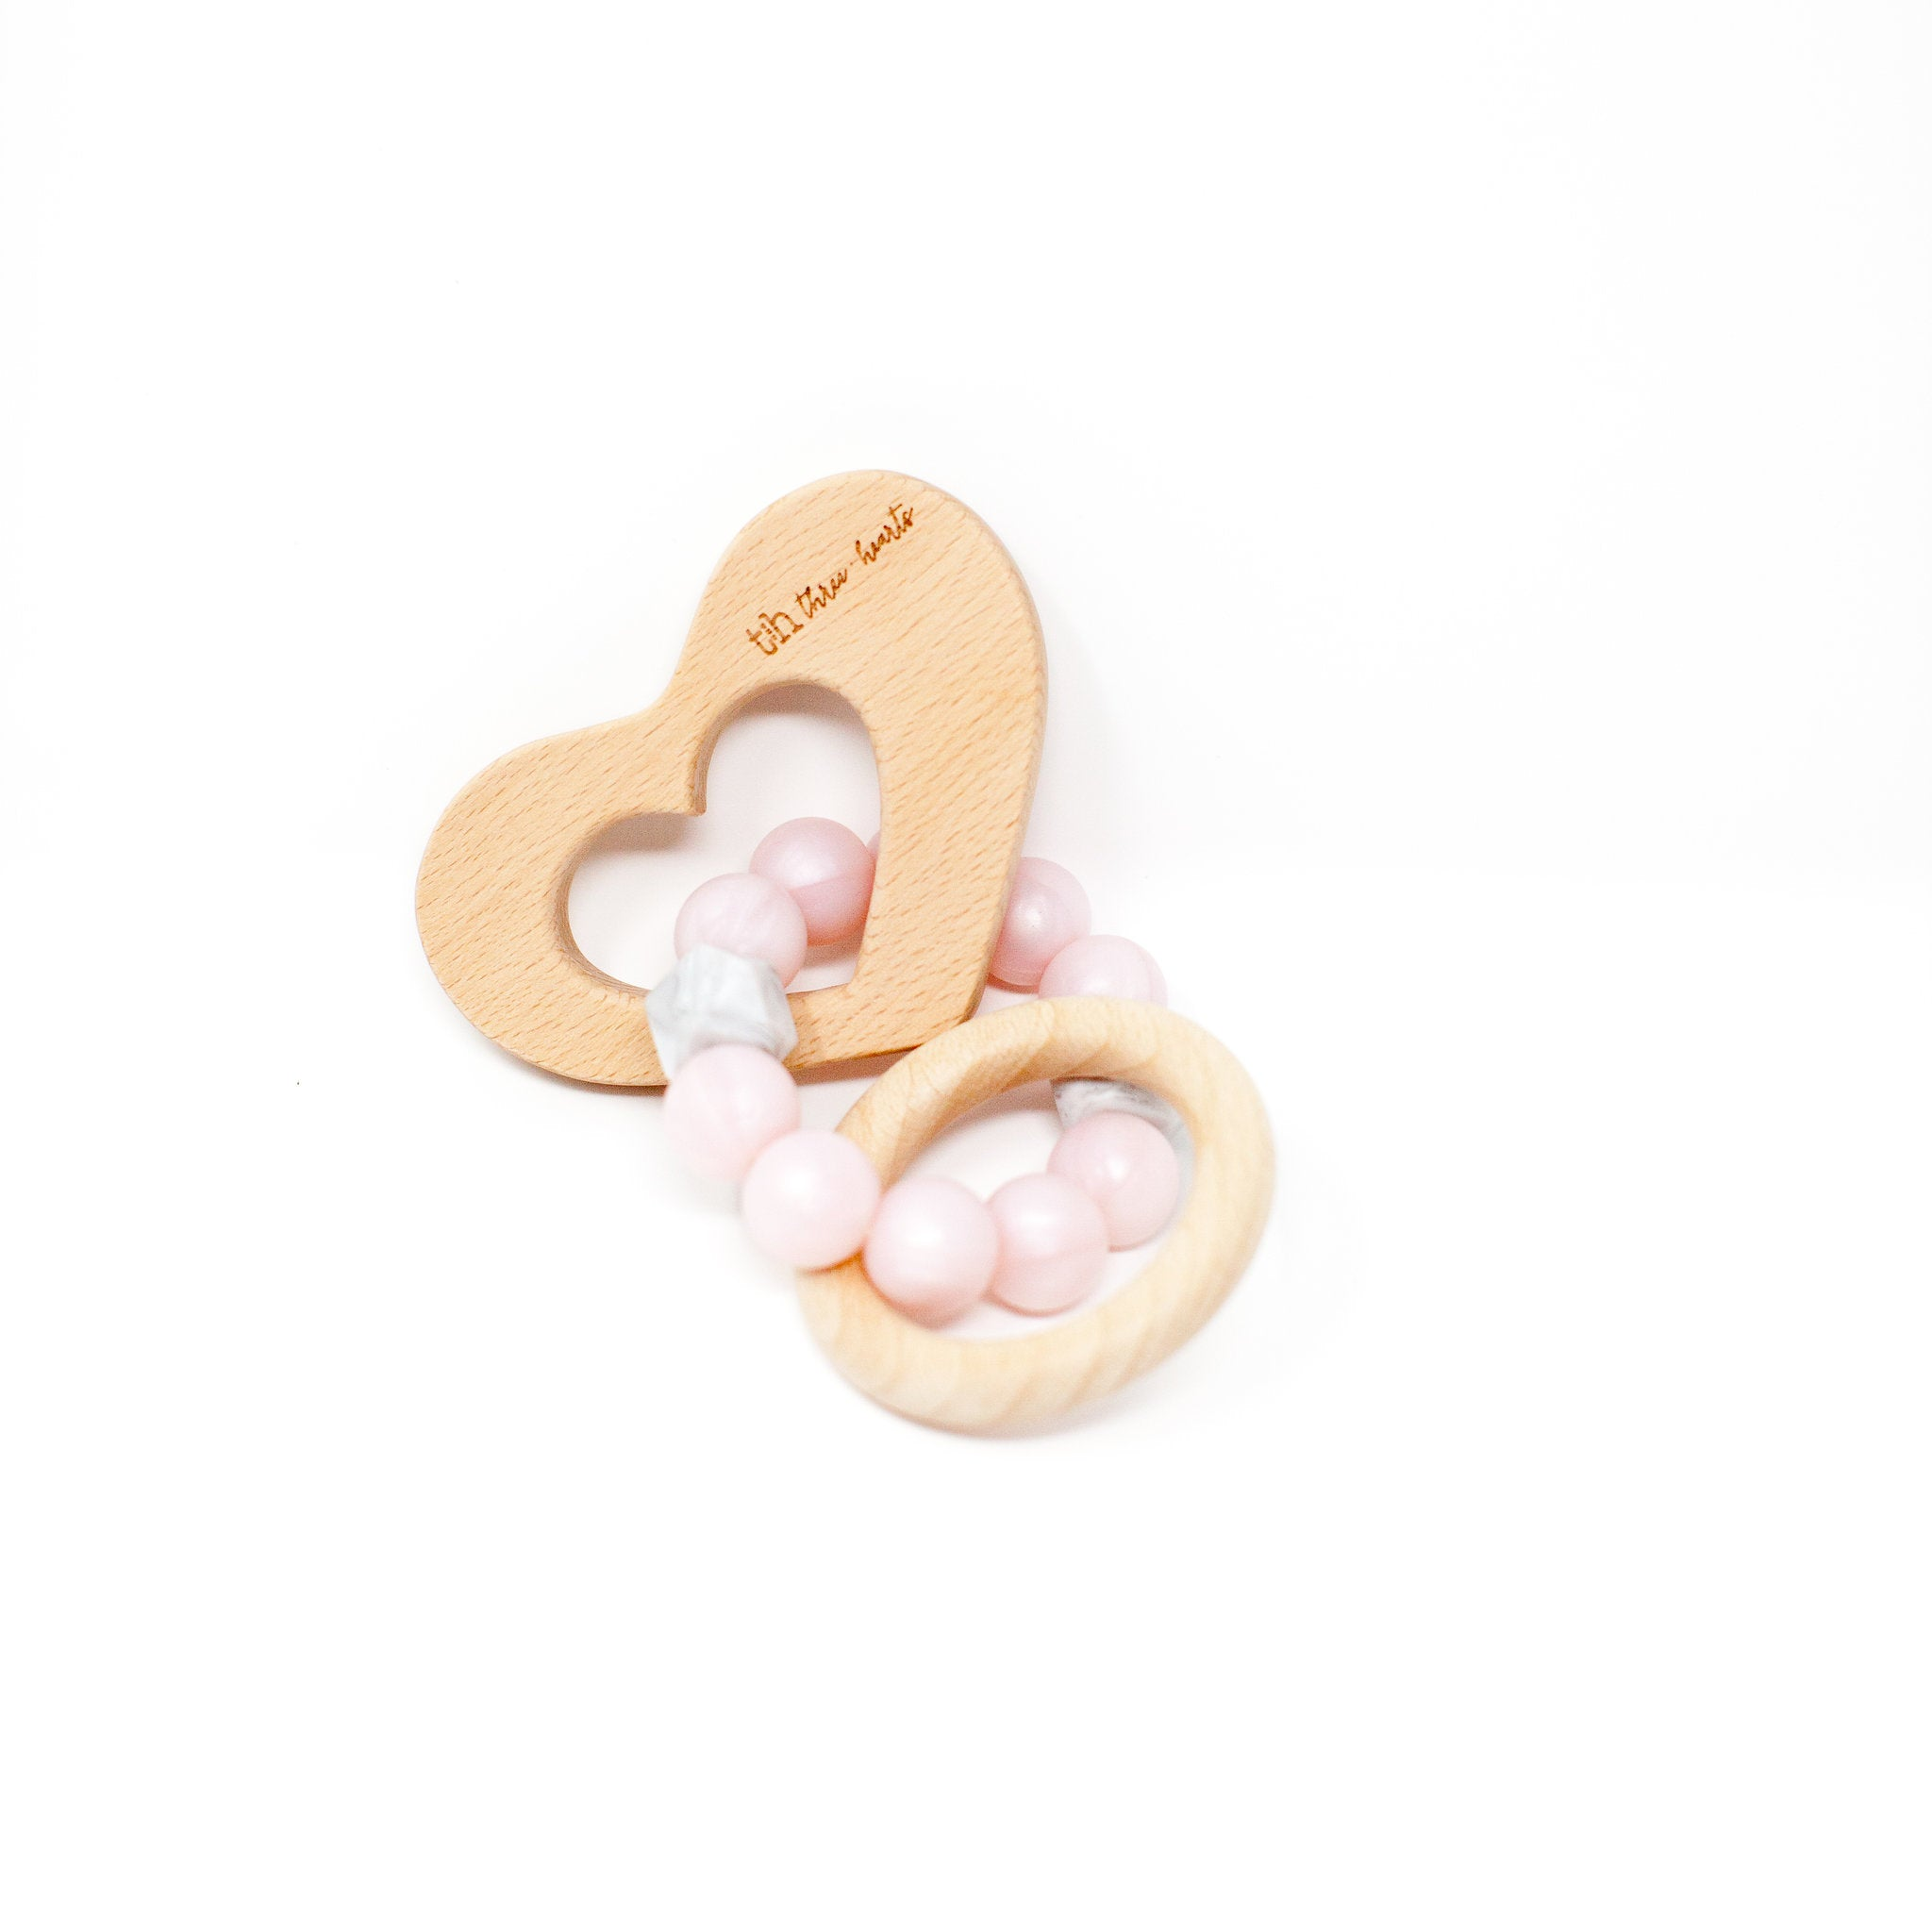 Heart Rattle - Natural Beech Wood